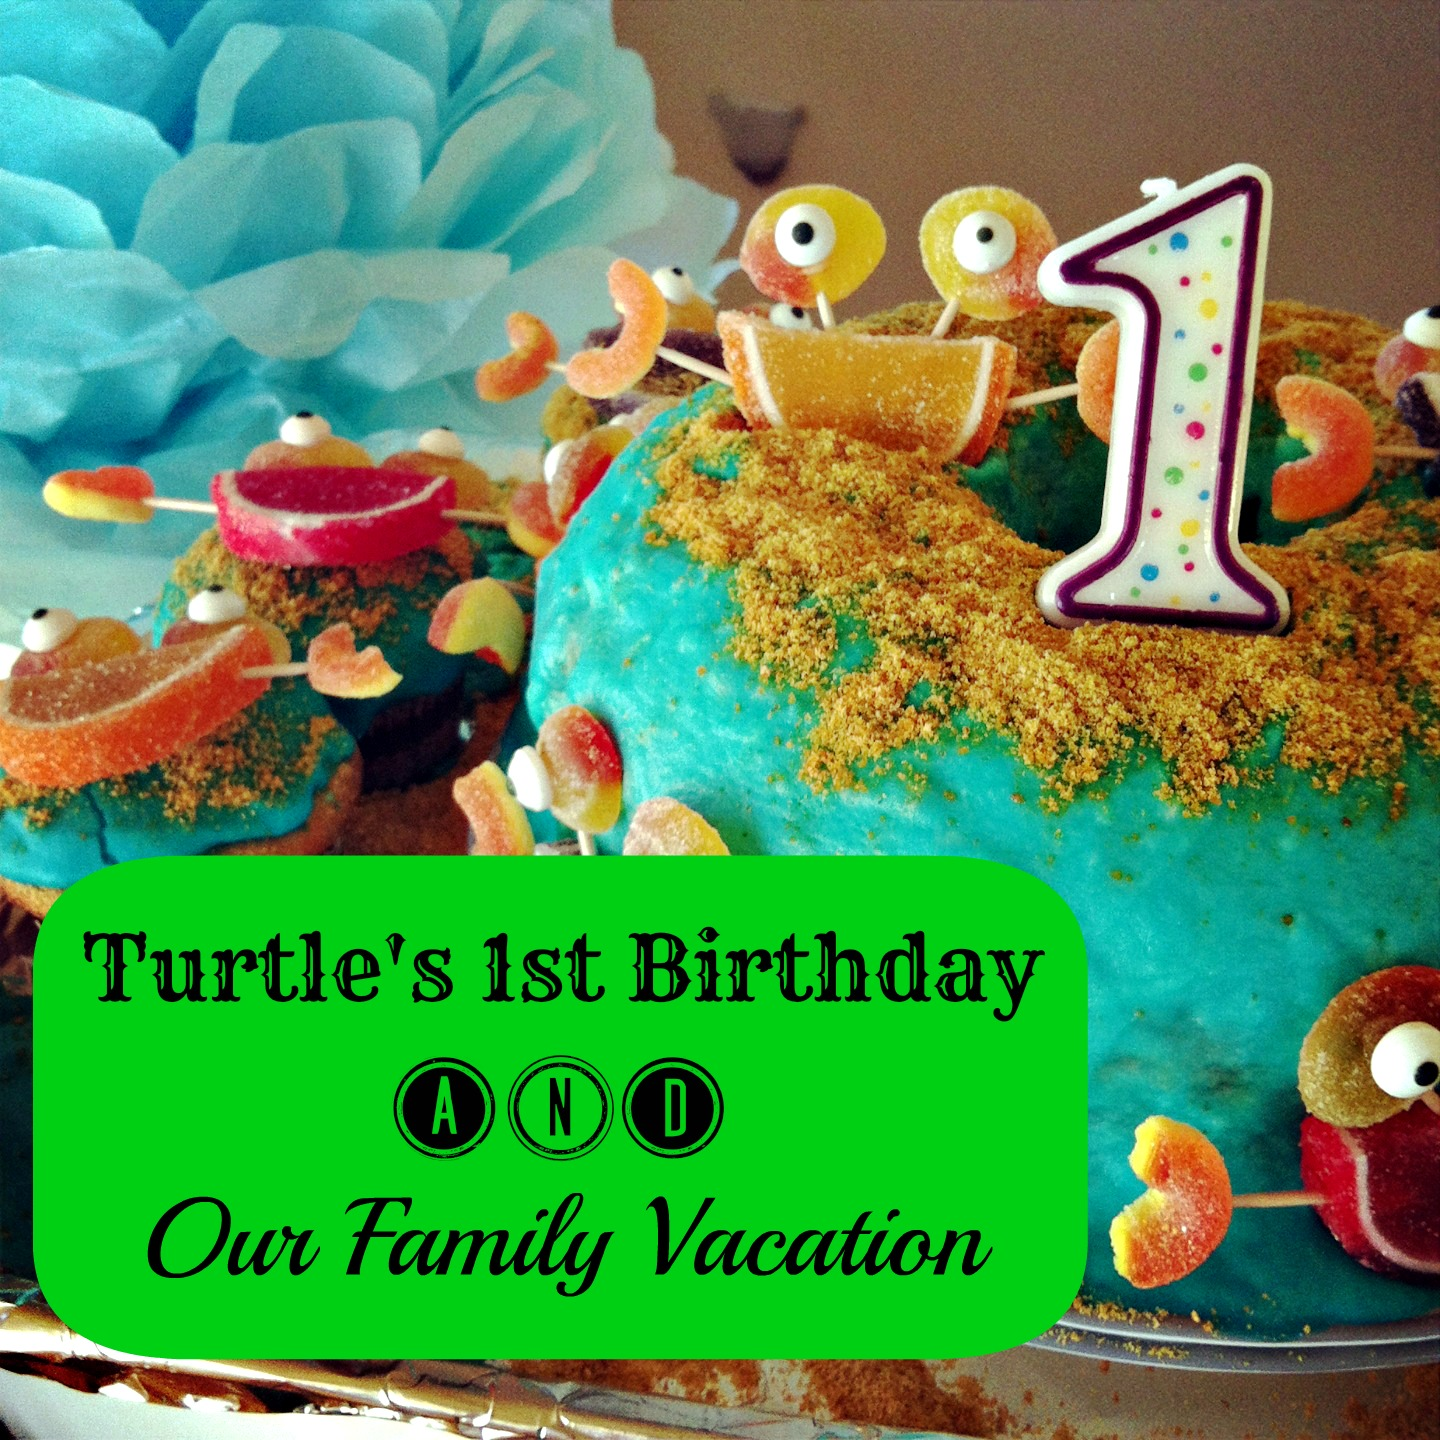 Turtle's 1st Birthday and Our Family Vacation